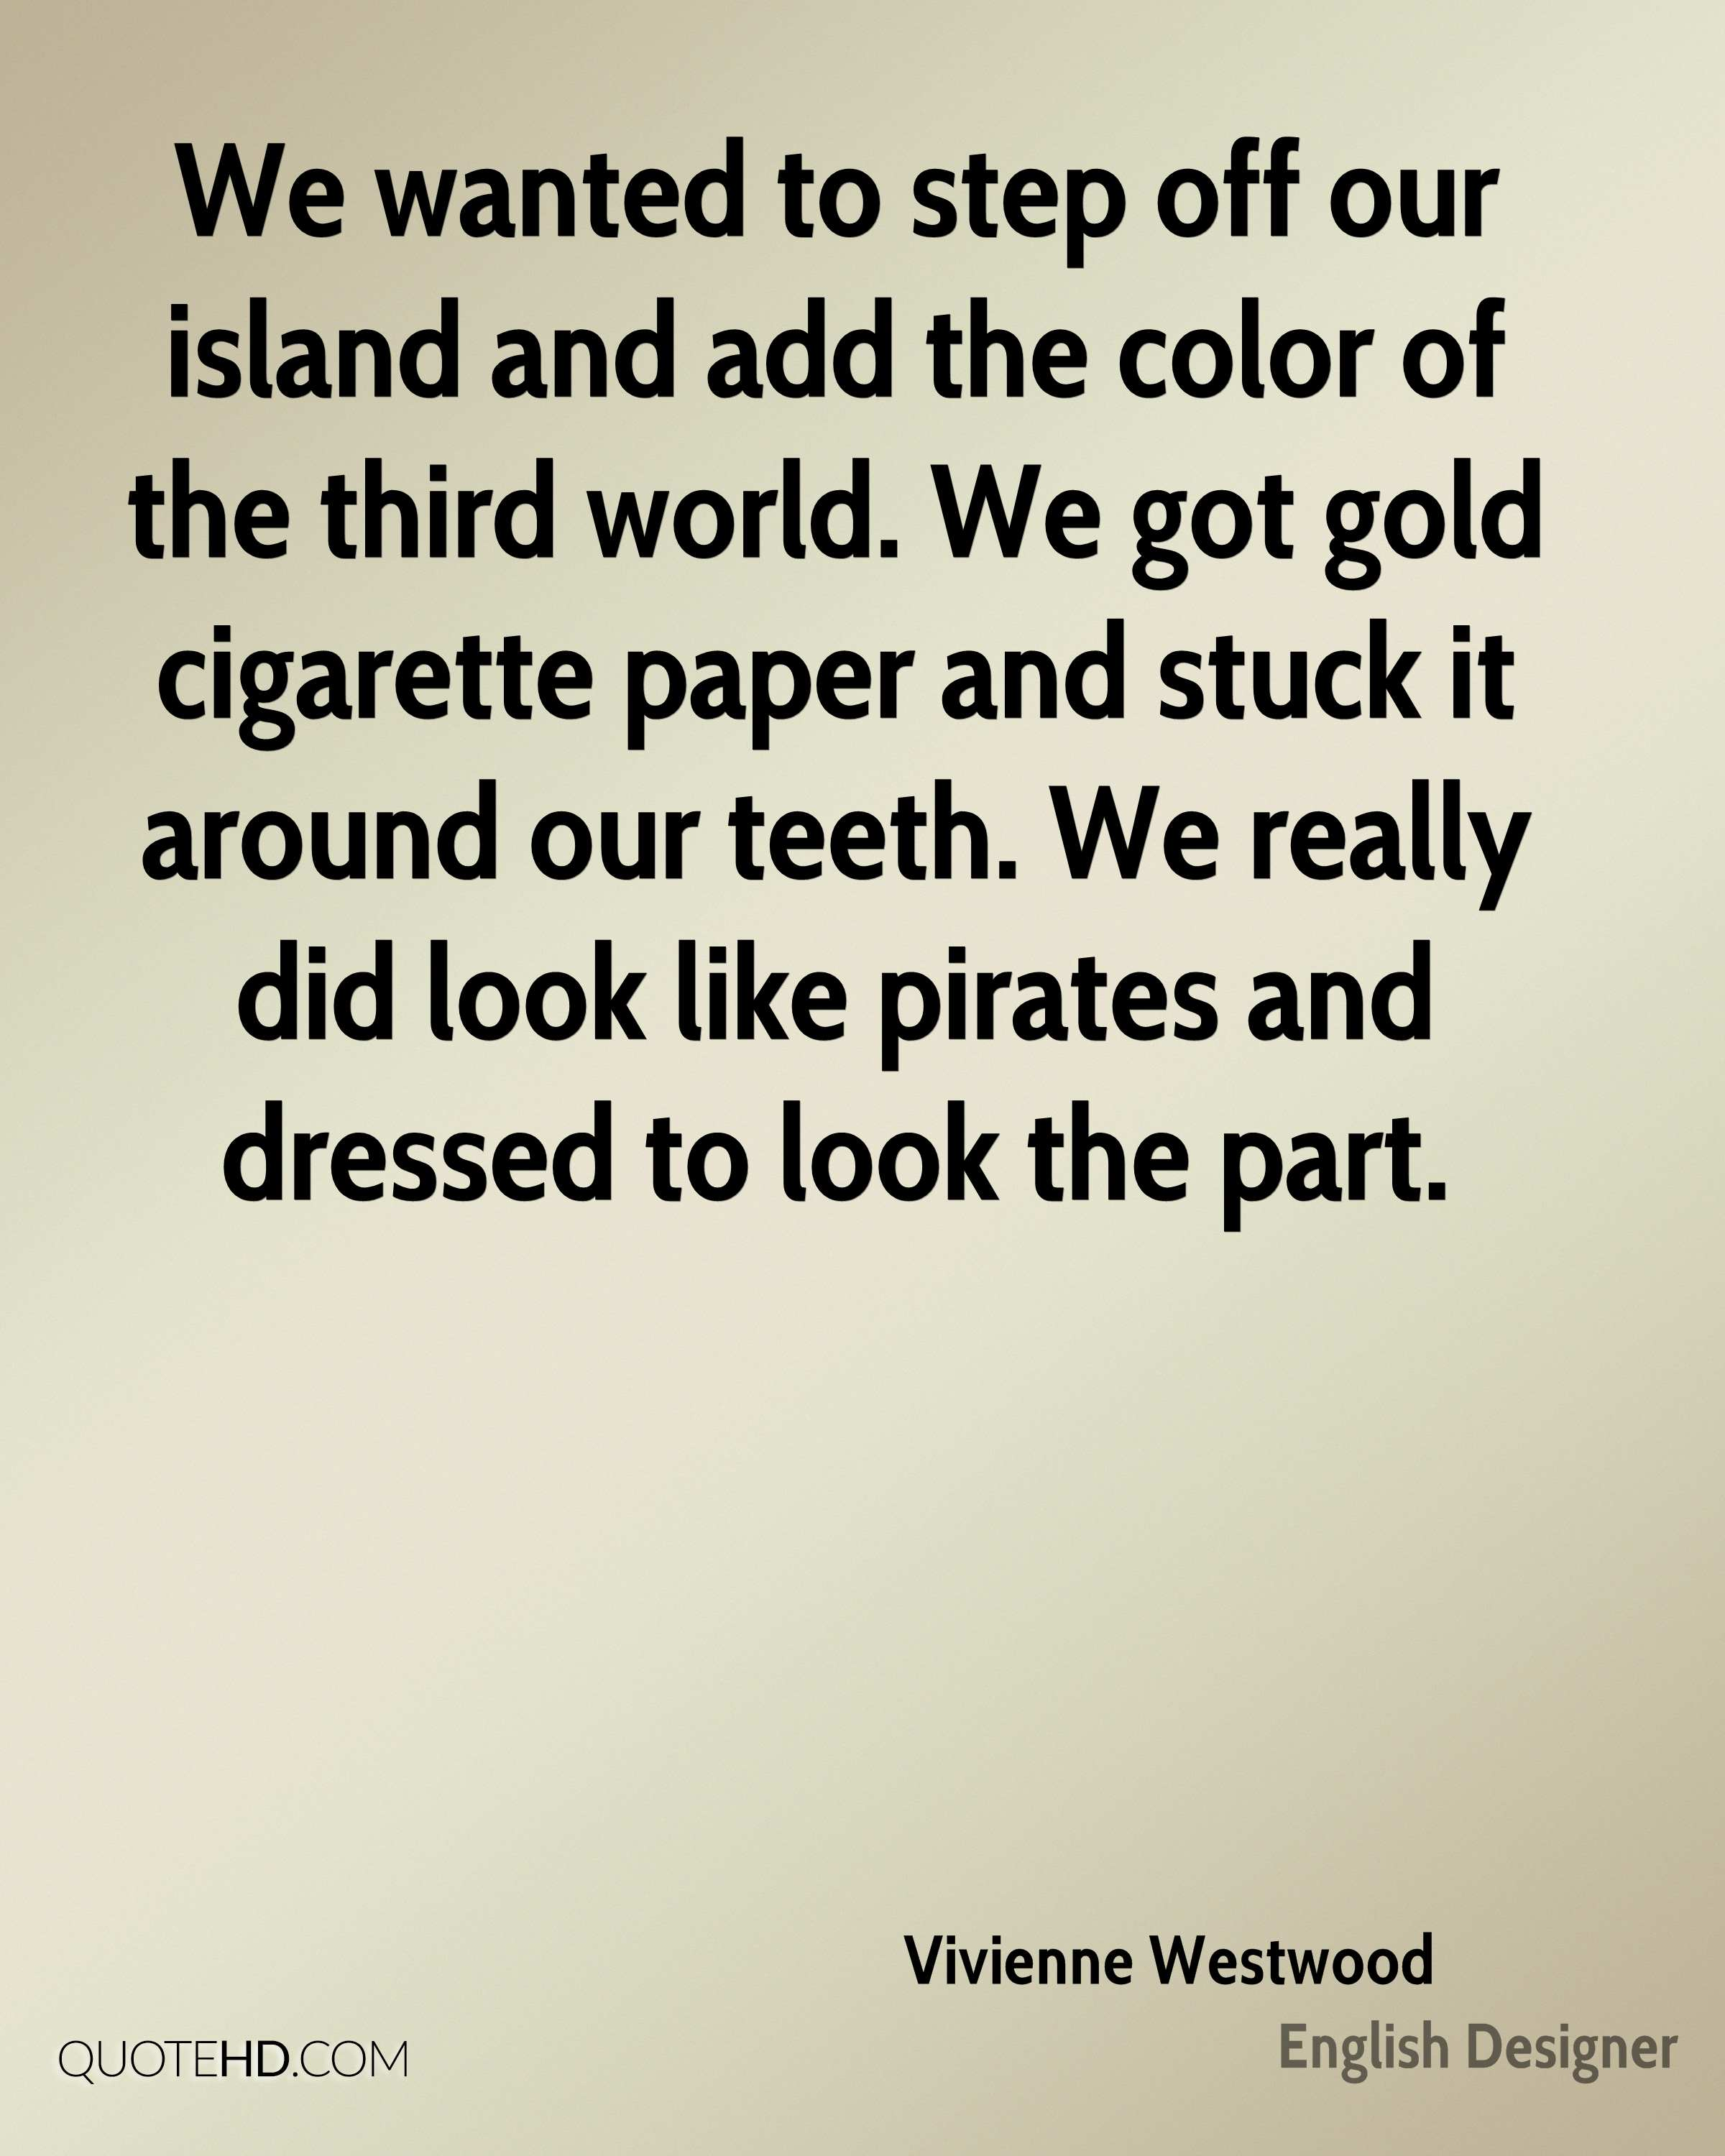 We wanted to step off our island and add the color of the third world. We got gold cigarette paper and stuck it around our teeth. We really did look like pirates and dressed to look the part.